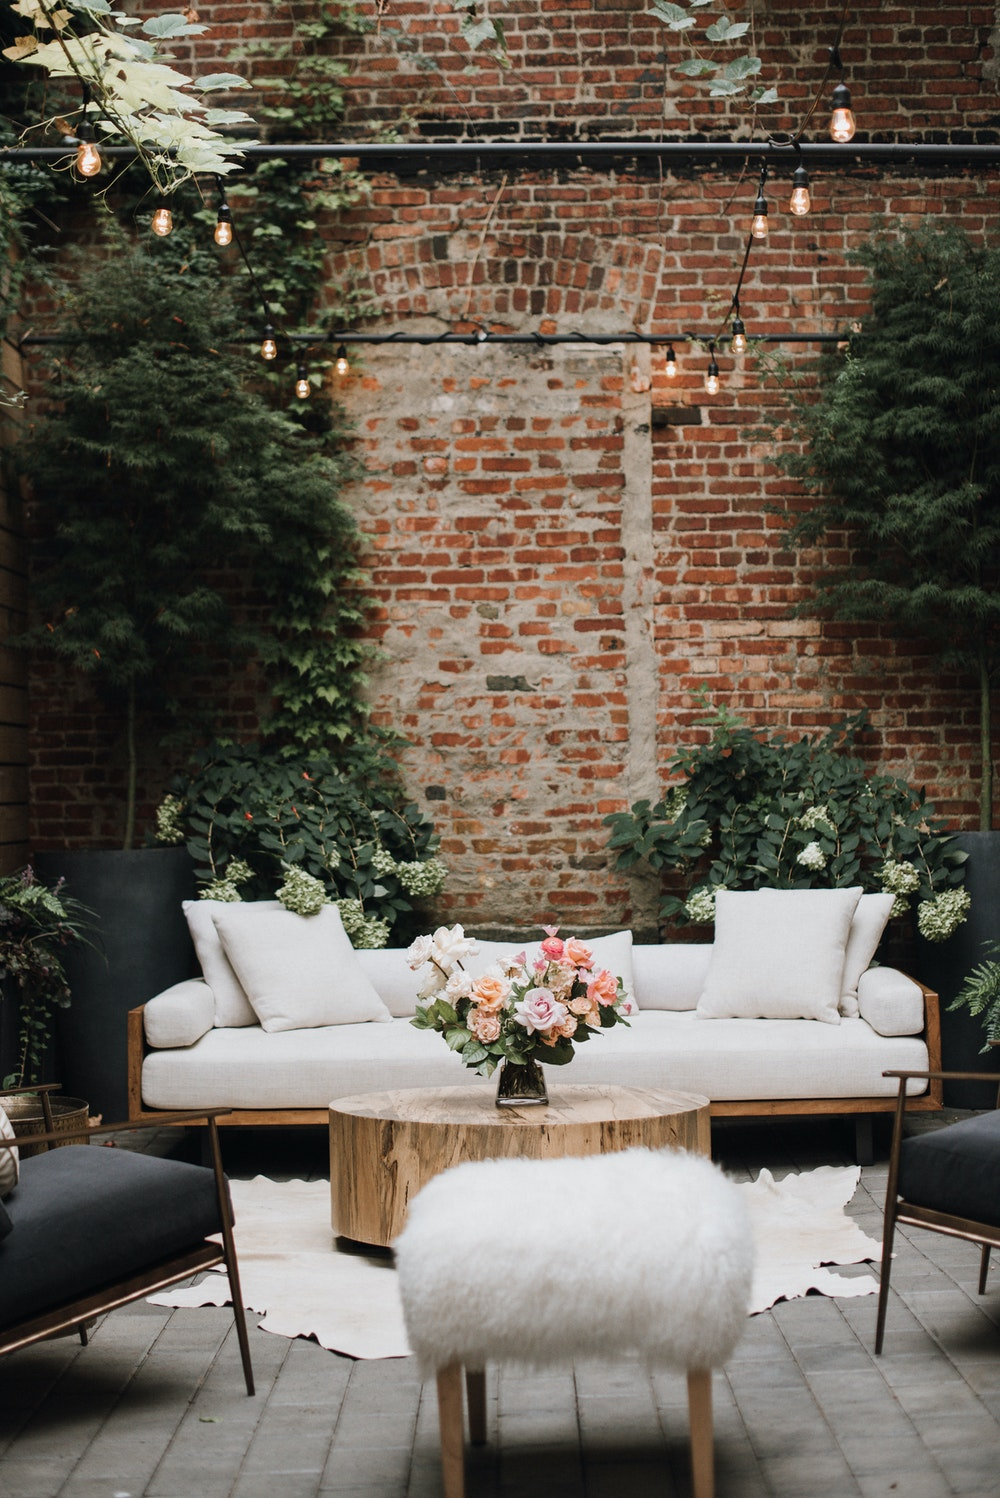 Pin by Kimberly Valle on backgrounds in 2020 Nyc wedding